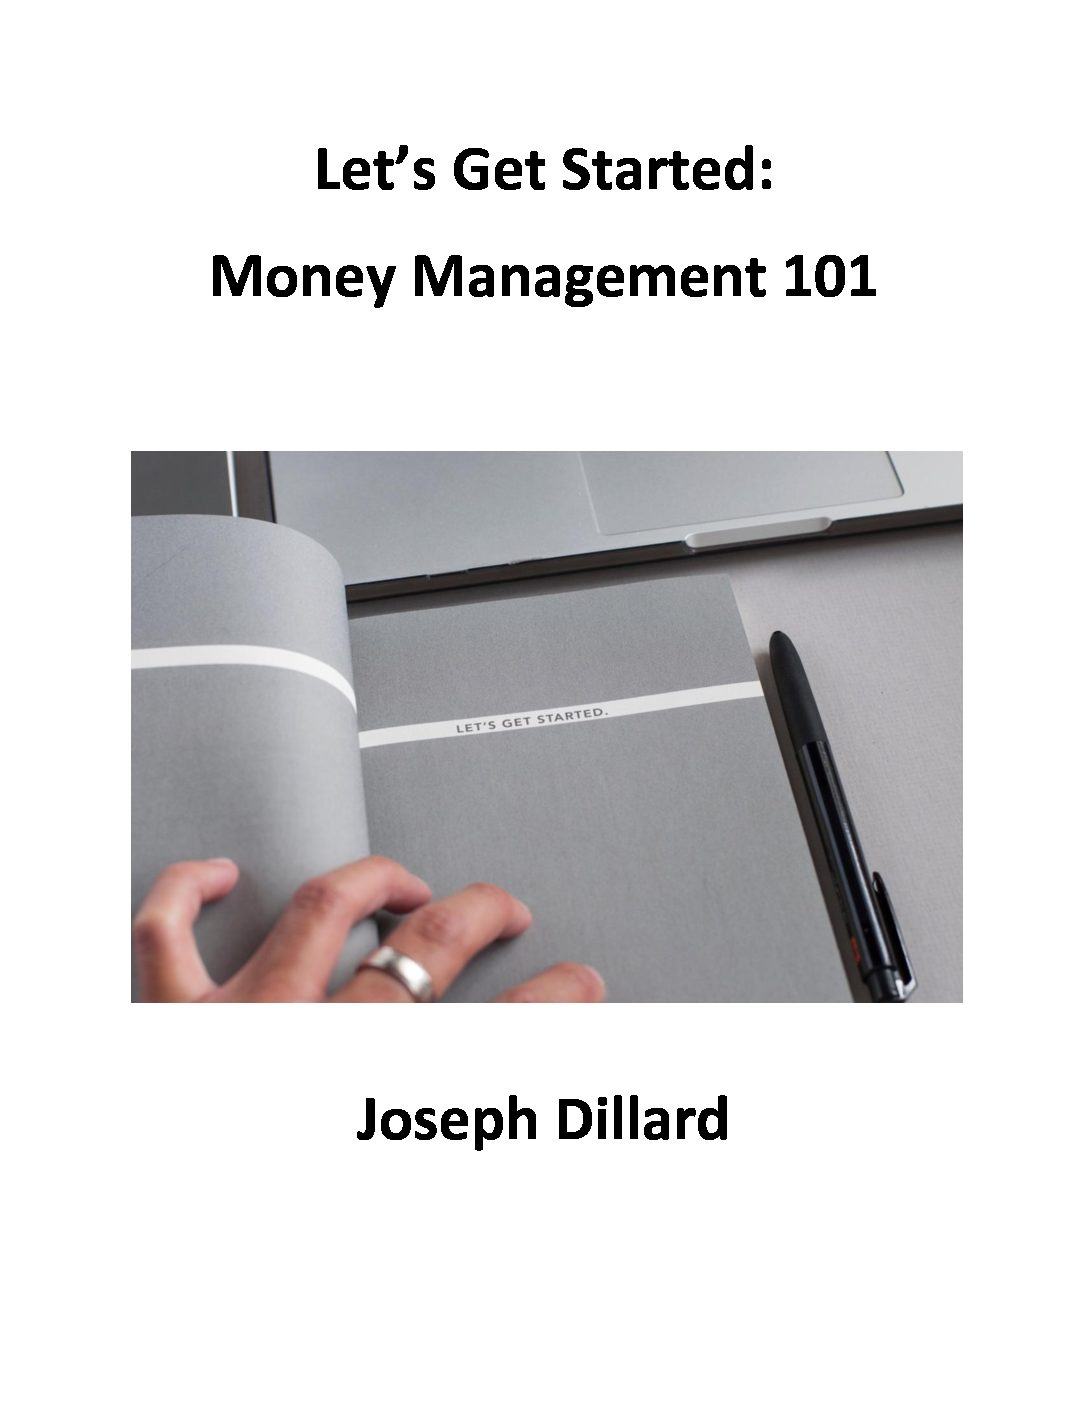 Lets Get Started - ebook Cover Page